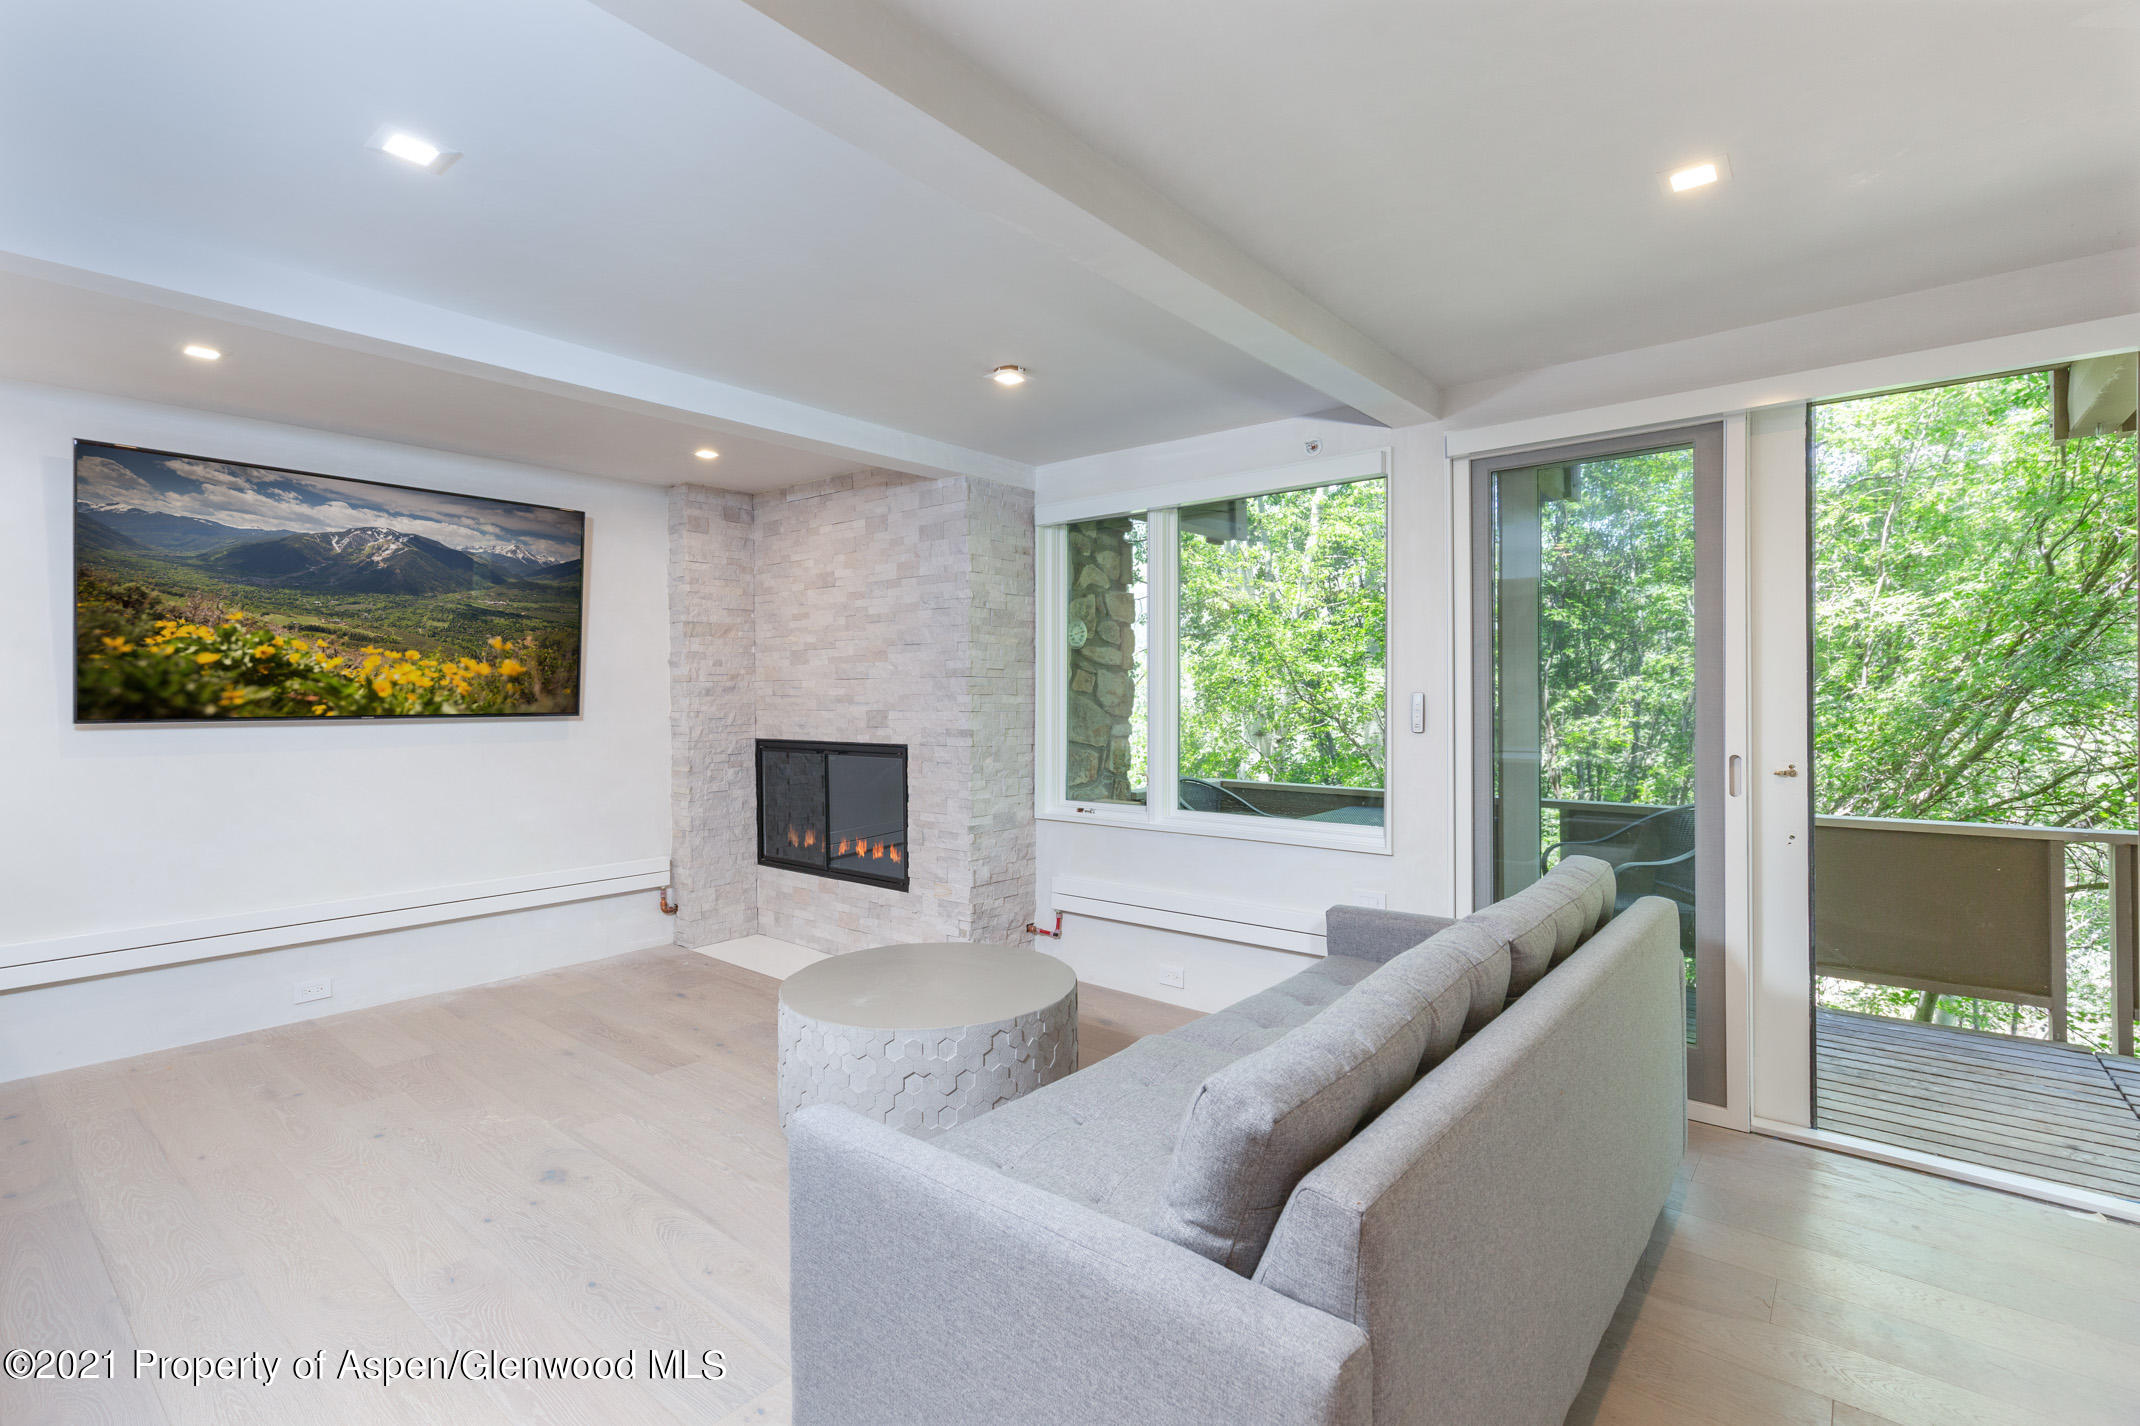 Stunning ''to the studs'' renovation of this 3 bed 3 bath ski in ski out condo at Aspen Alps. Steps to the Little Nell ski run, hotel and all of the extraordinary amenities downtown Aspen. Featuring custom finishes, fixtures, wood burning fireplace, Bosch appliances, caesarstone, two decks under a canopy of aspen trees with peekaboo views of smuggler and red mountain. Owners enjoy access to on-site fitness facility, tennis courts, outdoor pool, and health spa. Ownership includes front desk, generously sized owner storage, underground parking space. Completion anticipated November 2021.